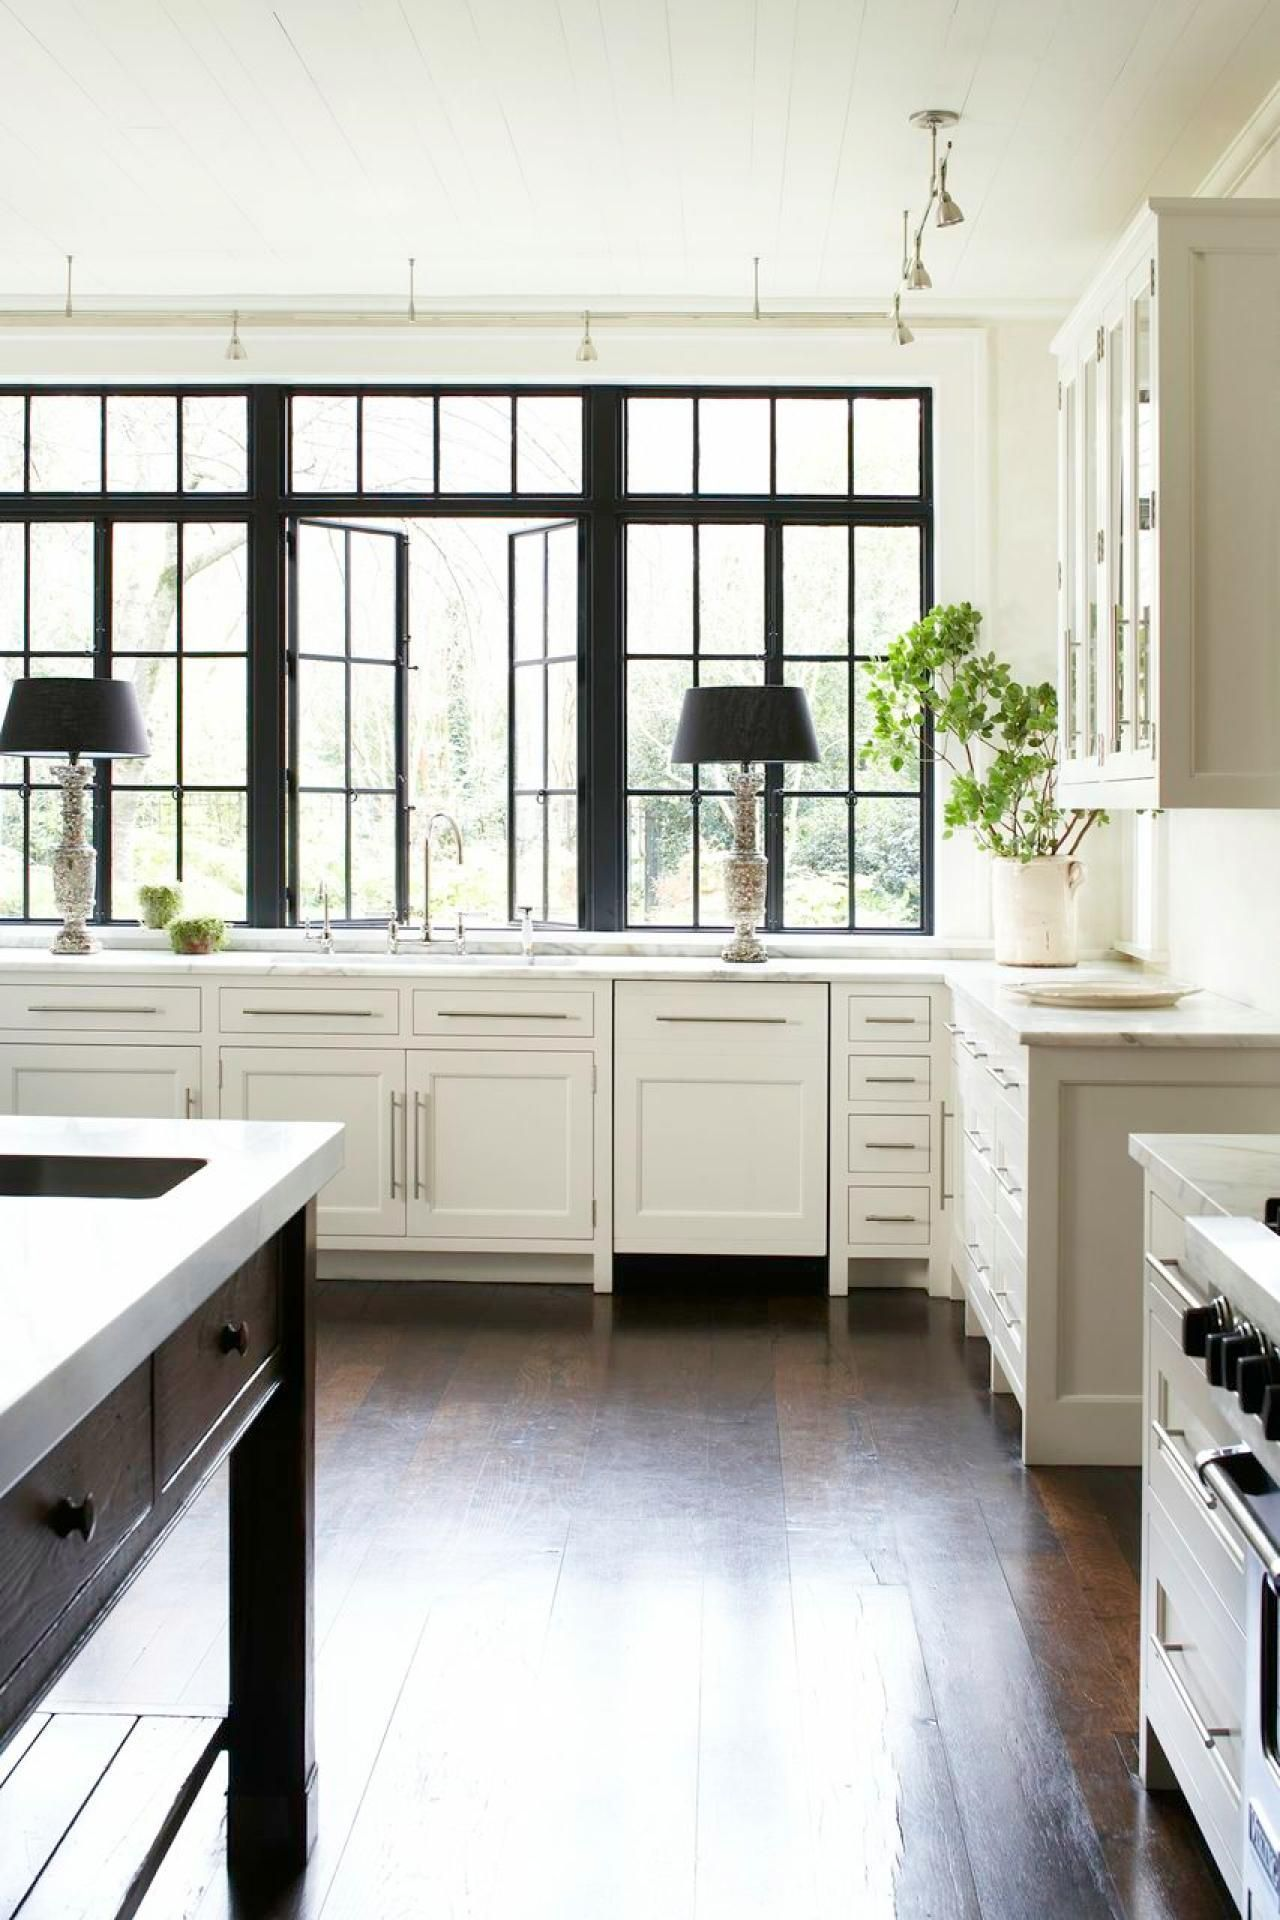 Picture of: Lamps On Kitchen Counters The Inspired Room